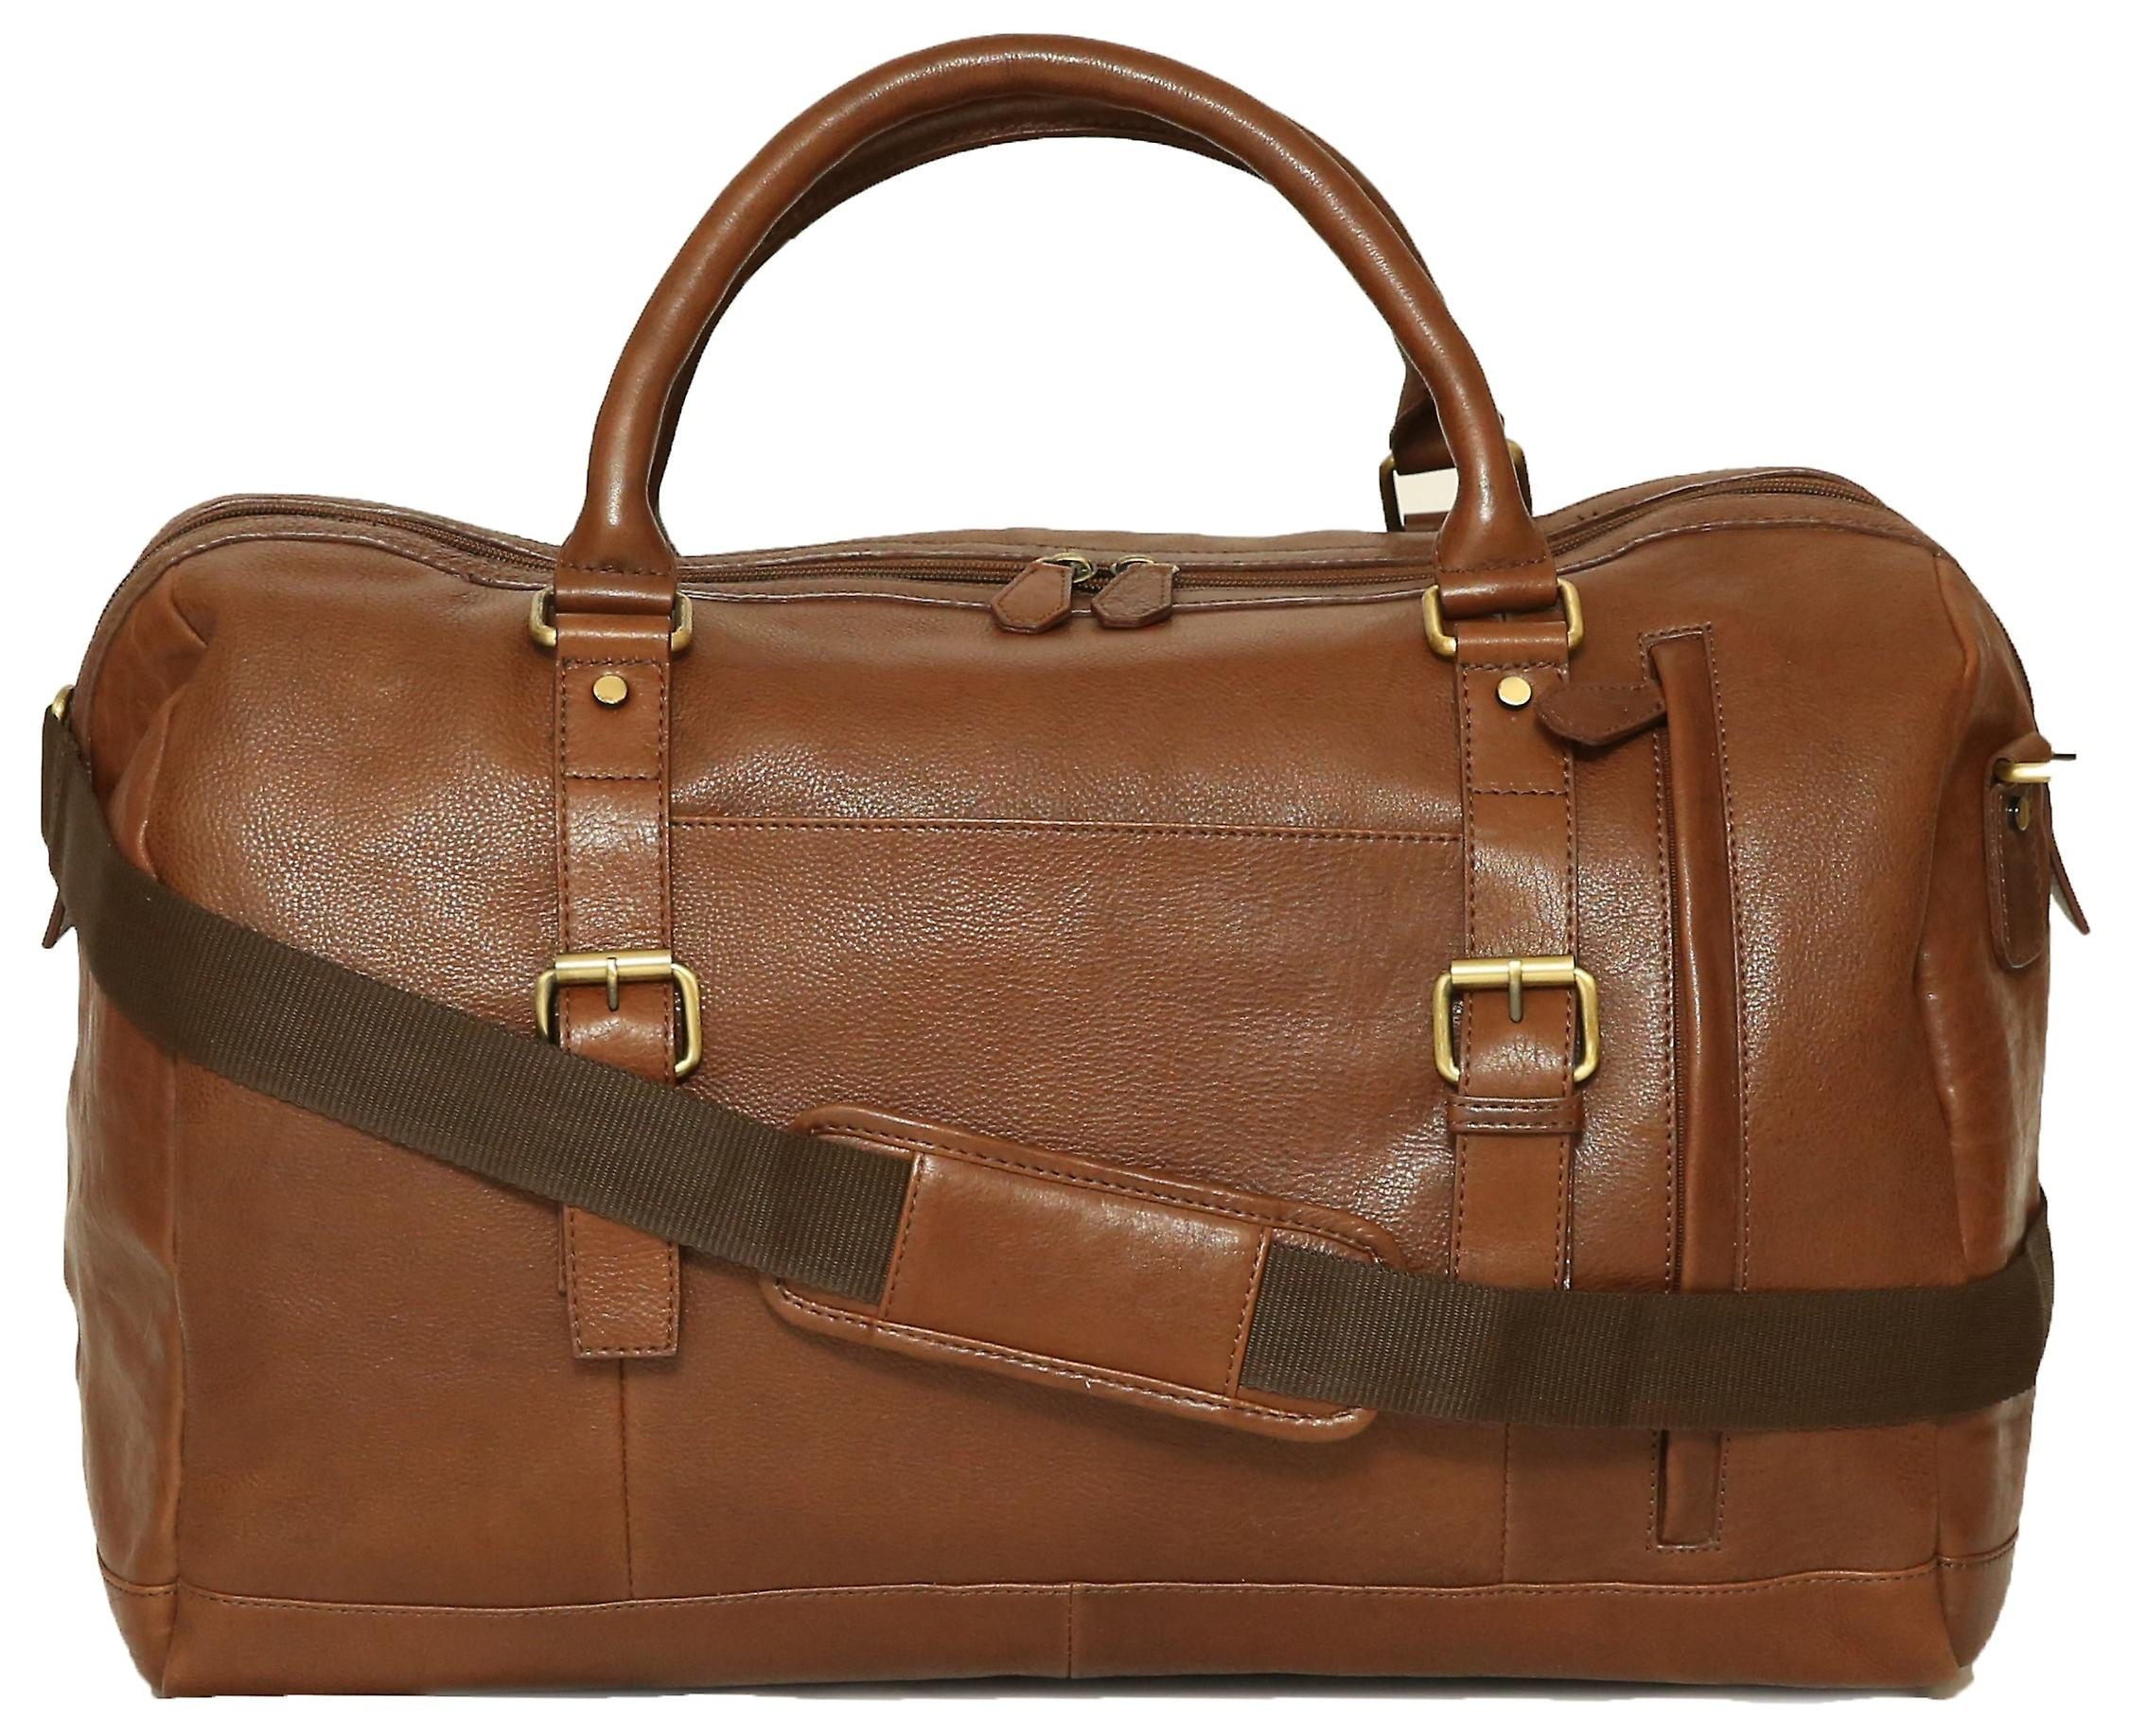 Felda Genuine Leather Holdall Duffel Bag - Cabin Hand Luggage - With Front Pocket